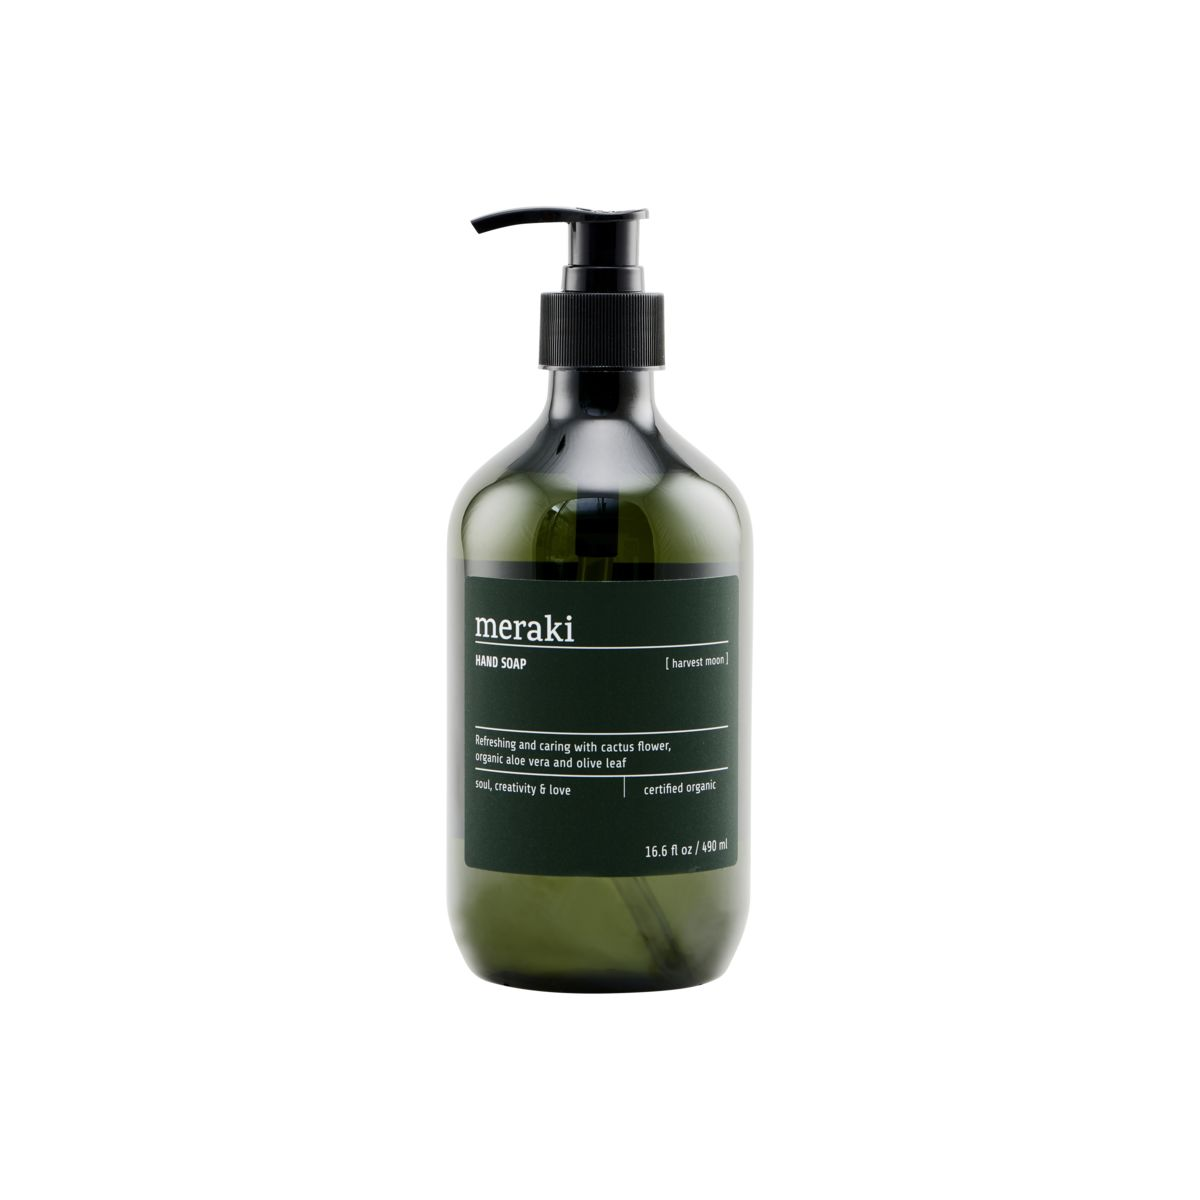 Meraki Harvest Moon Hand Wash